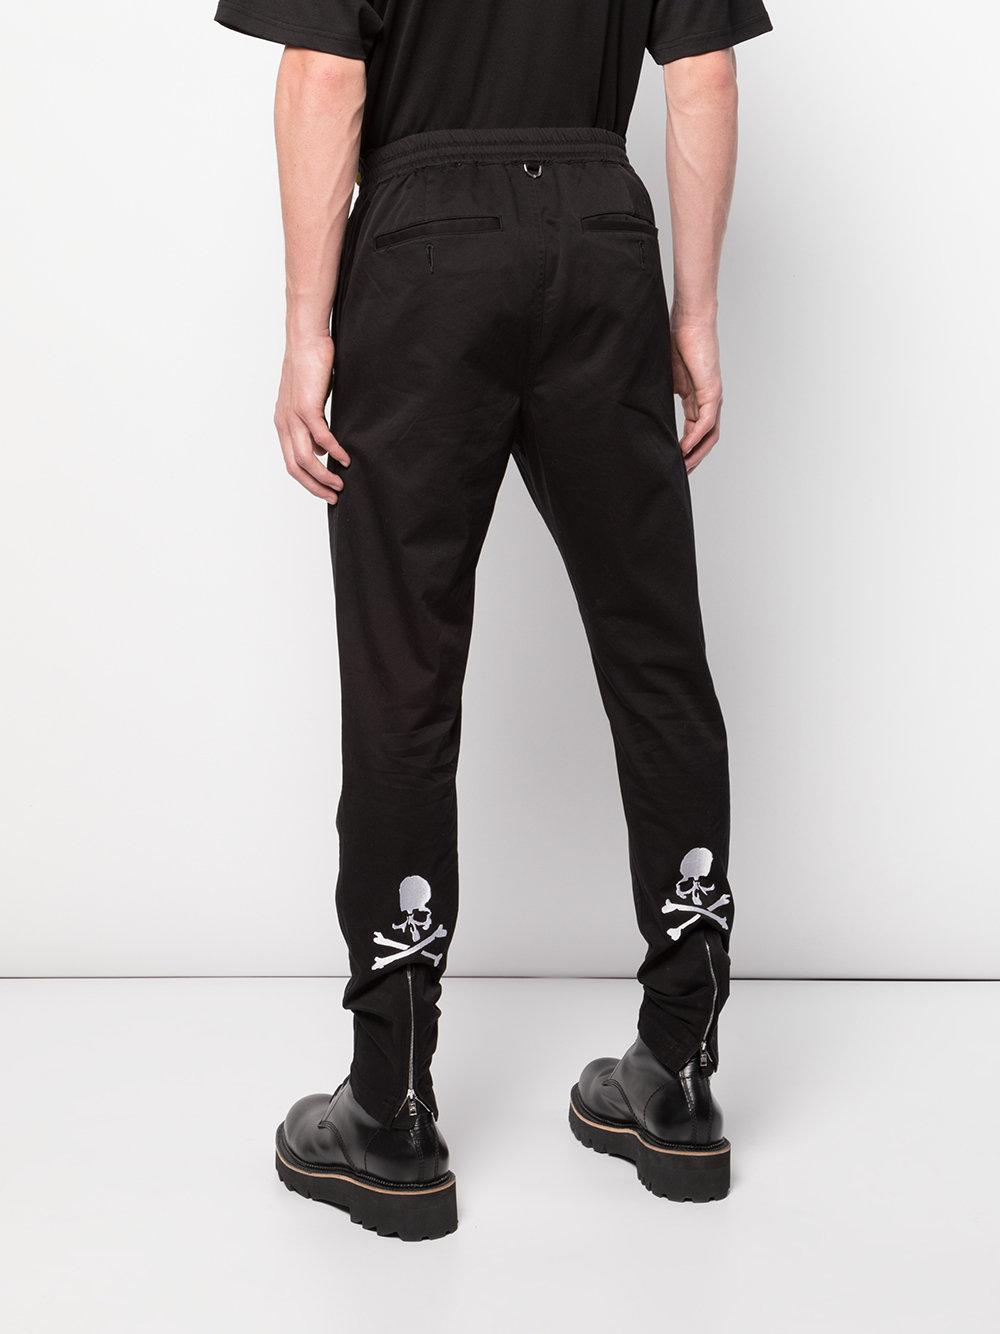 Mastermind Japan Cotton Elasticated Waist Slim Fit Trousers in Black for Men